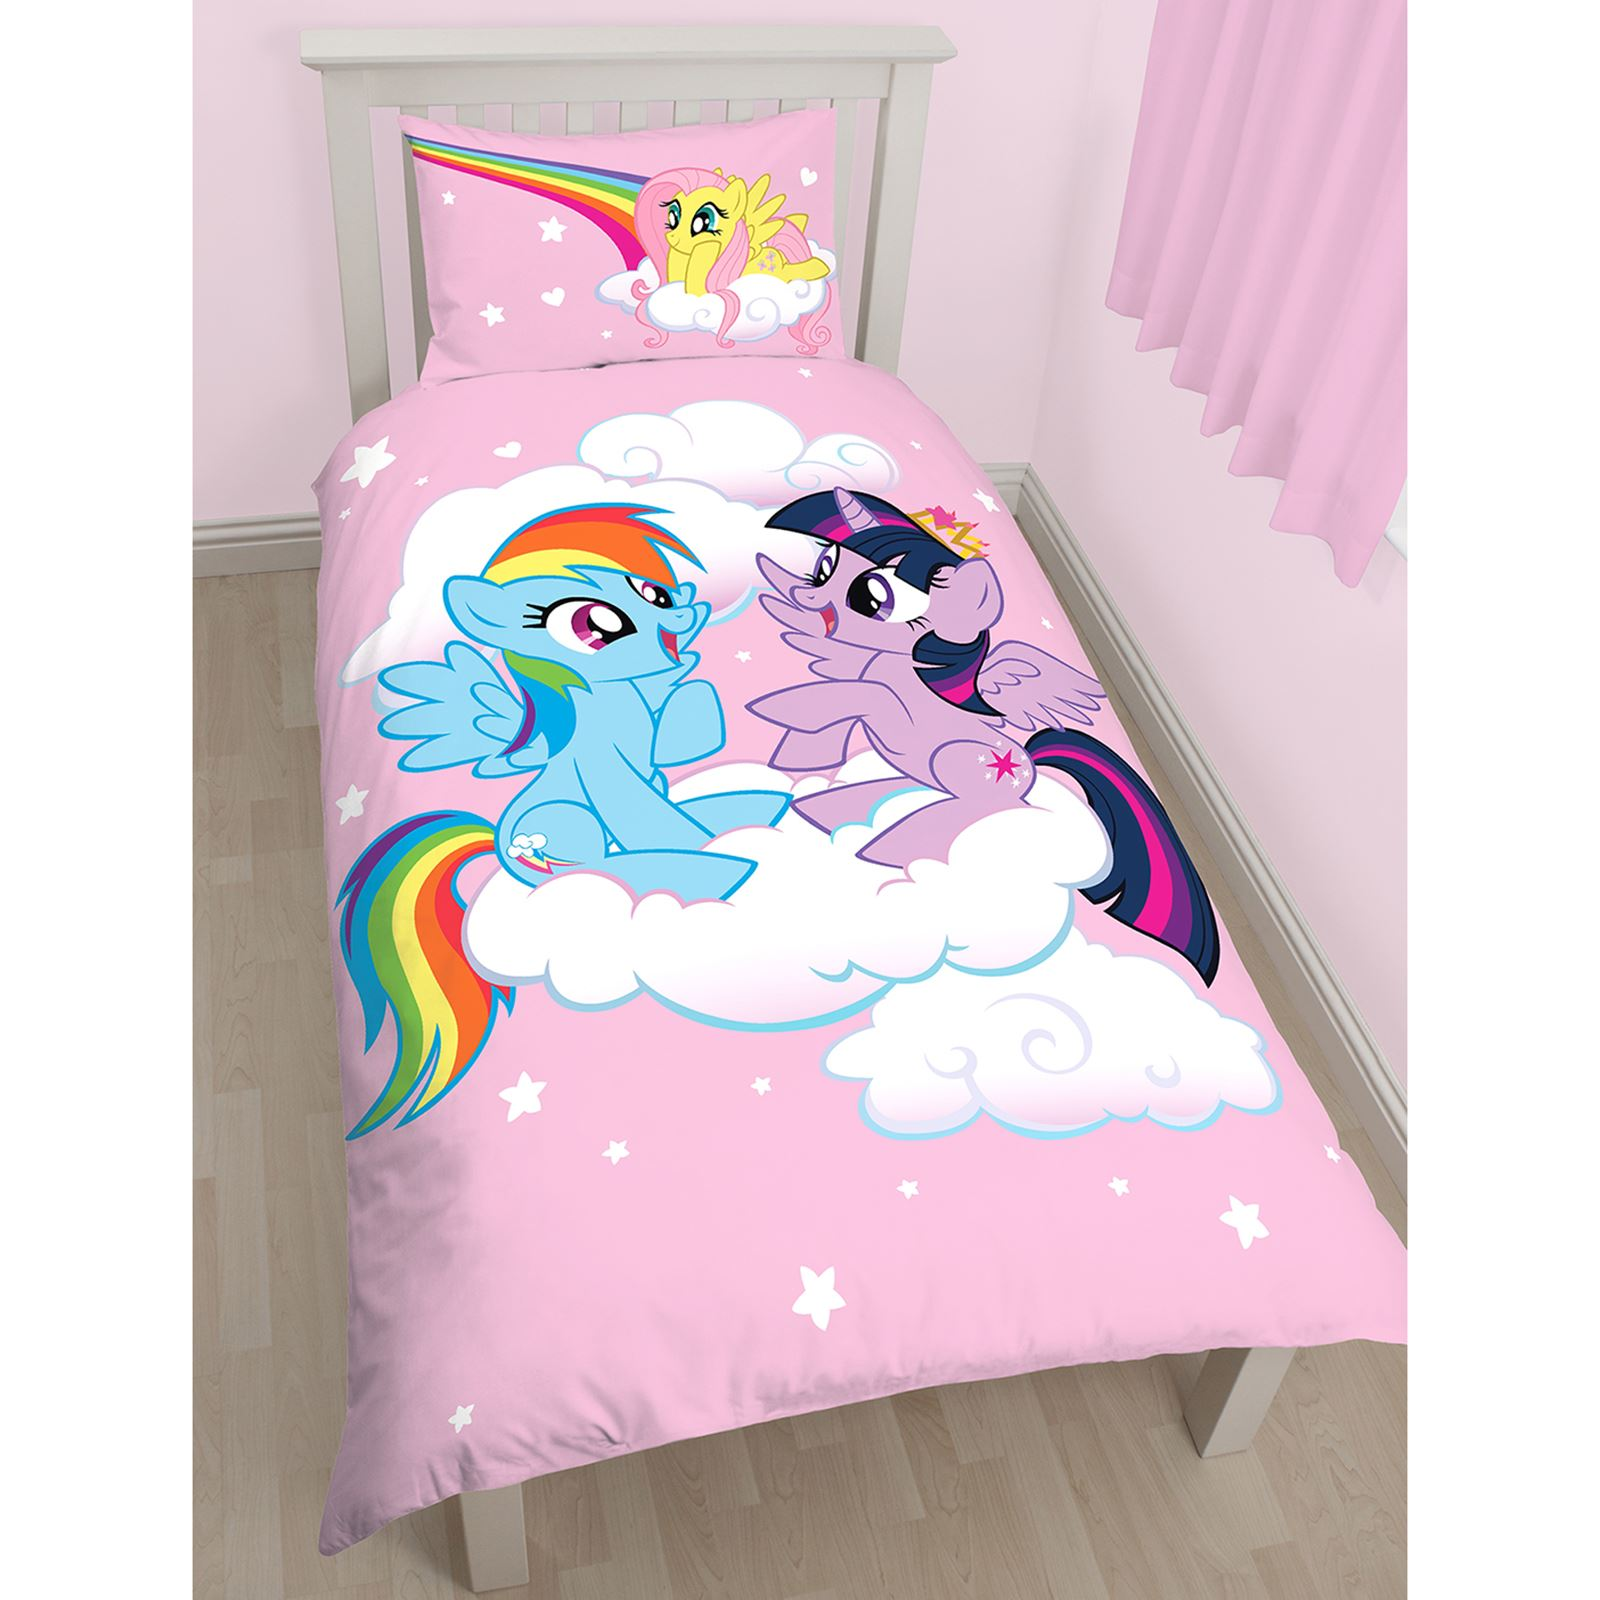 My little pony housse couette simple ensembles chambre À coucher ...